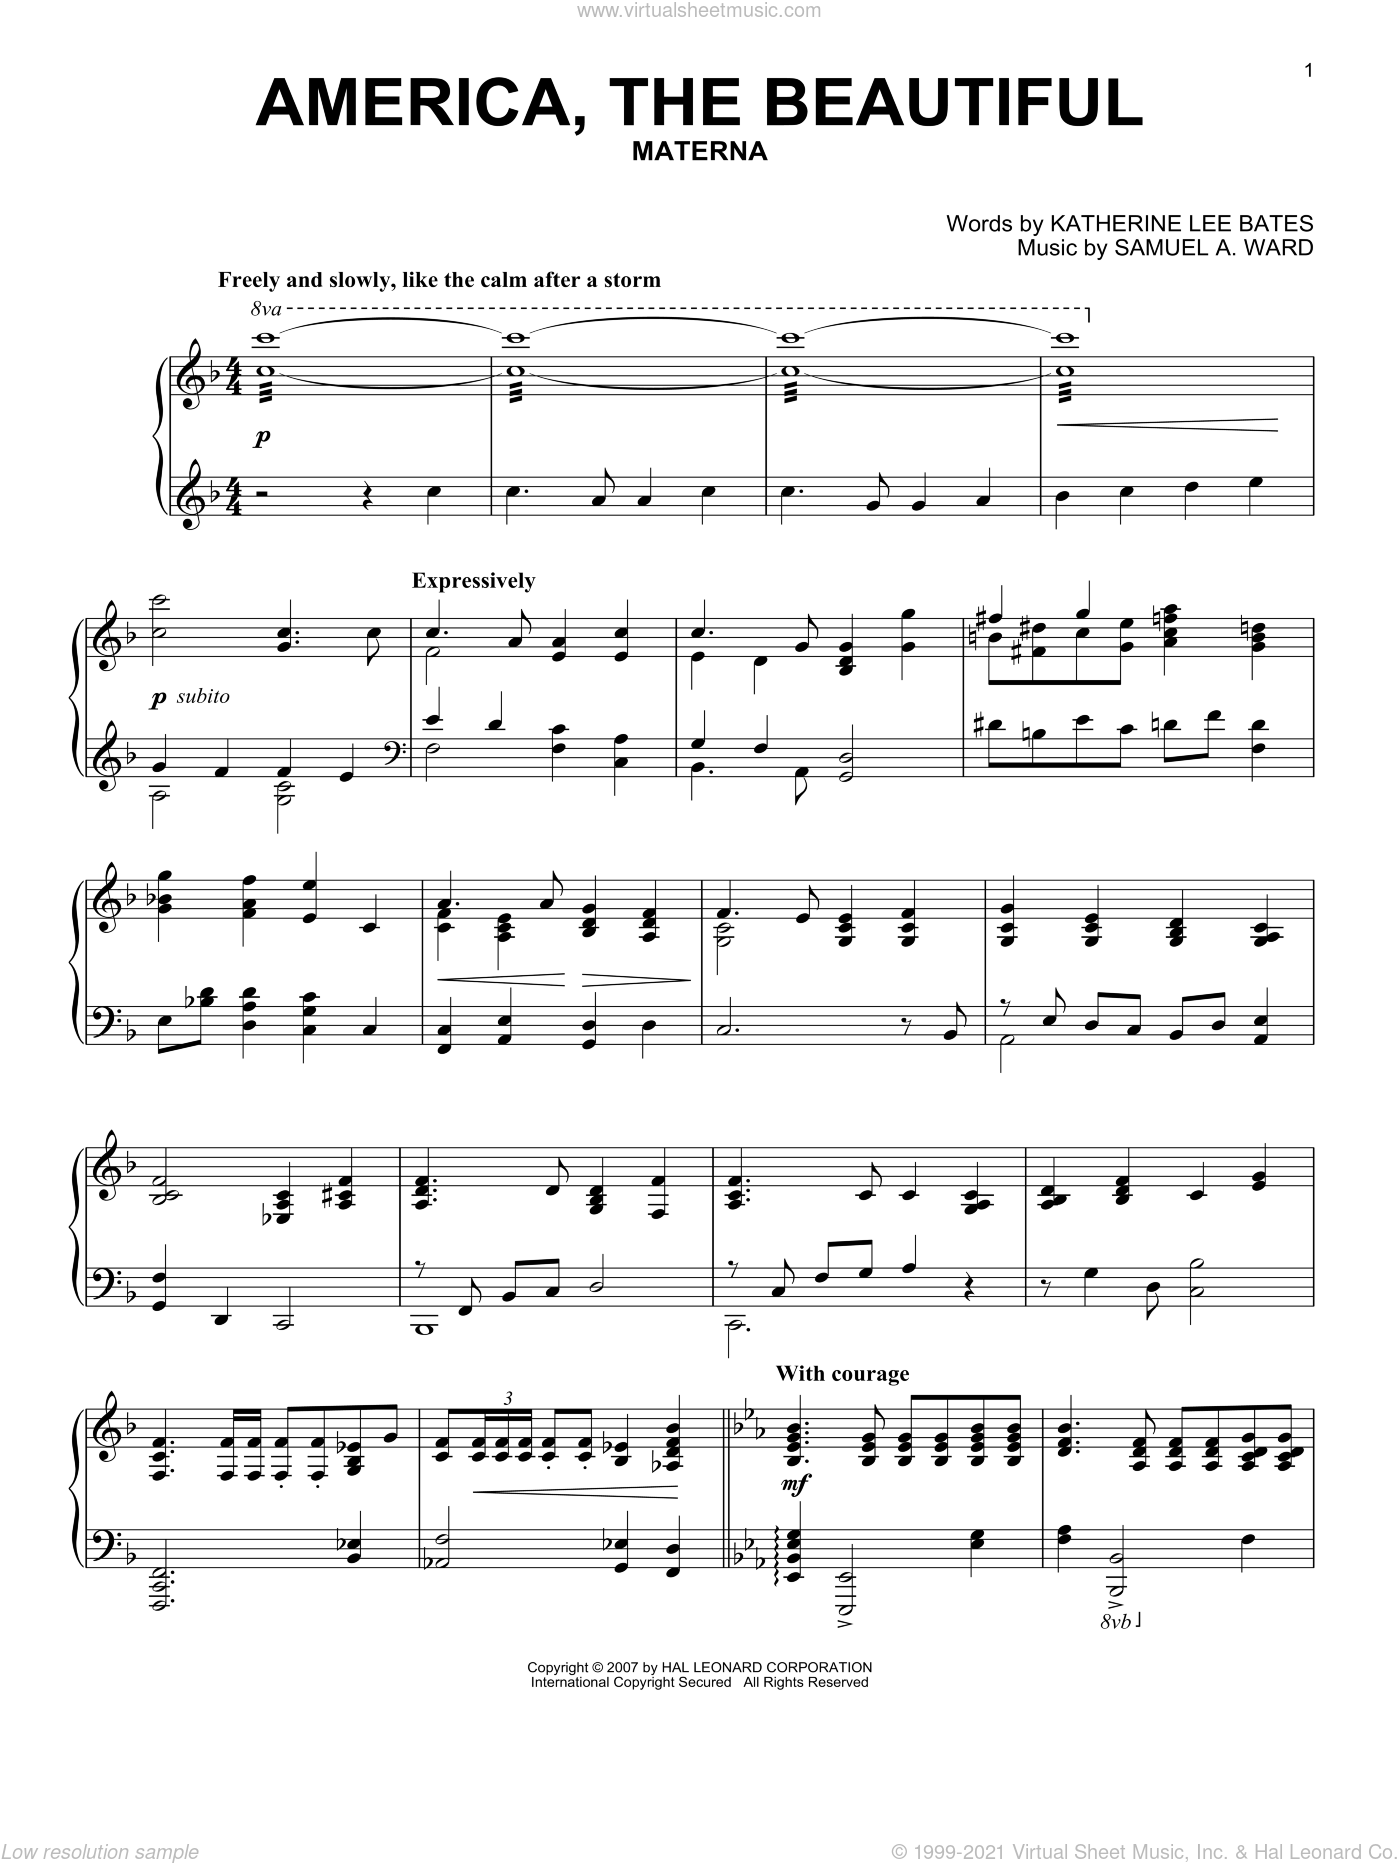 America, The Beautiful, (intermediate) sheet music for piano solo by Samuel Augustus Ward, Katharine Bates and Katherine Lee Bates, intermediate skill level